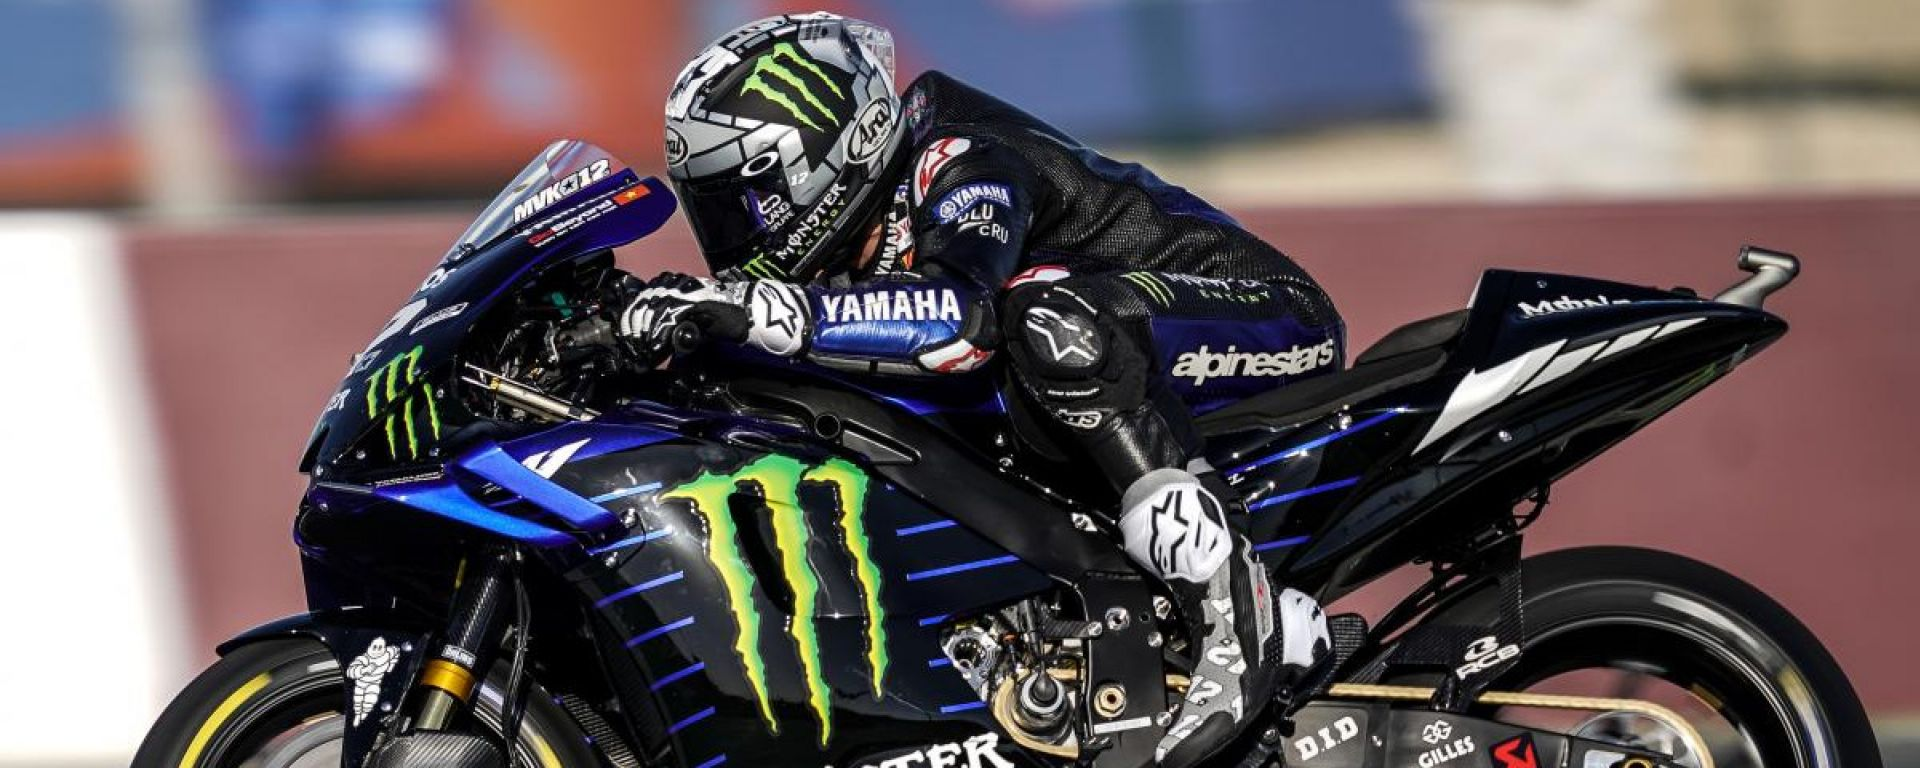 Gp Qatar 2019, è Maverick Vinales il poleman